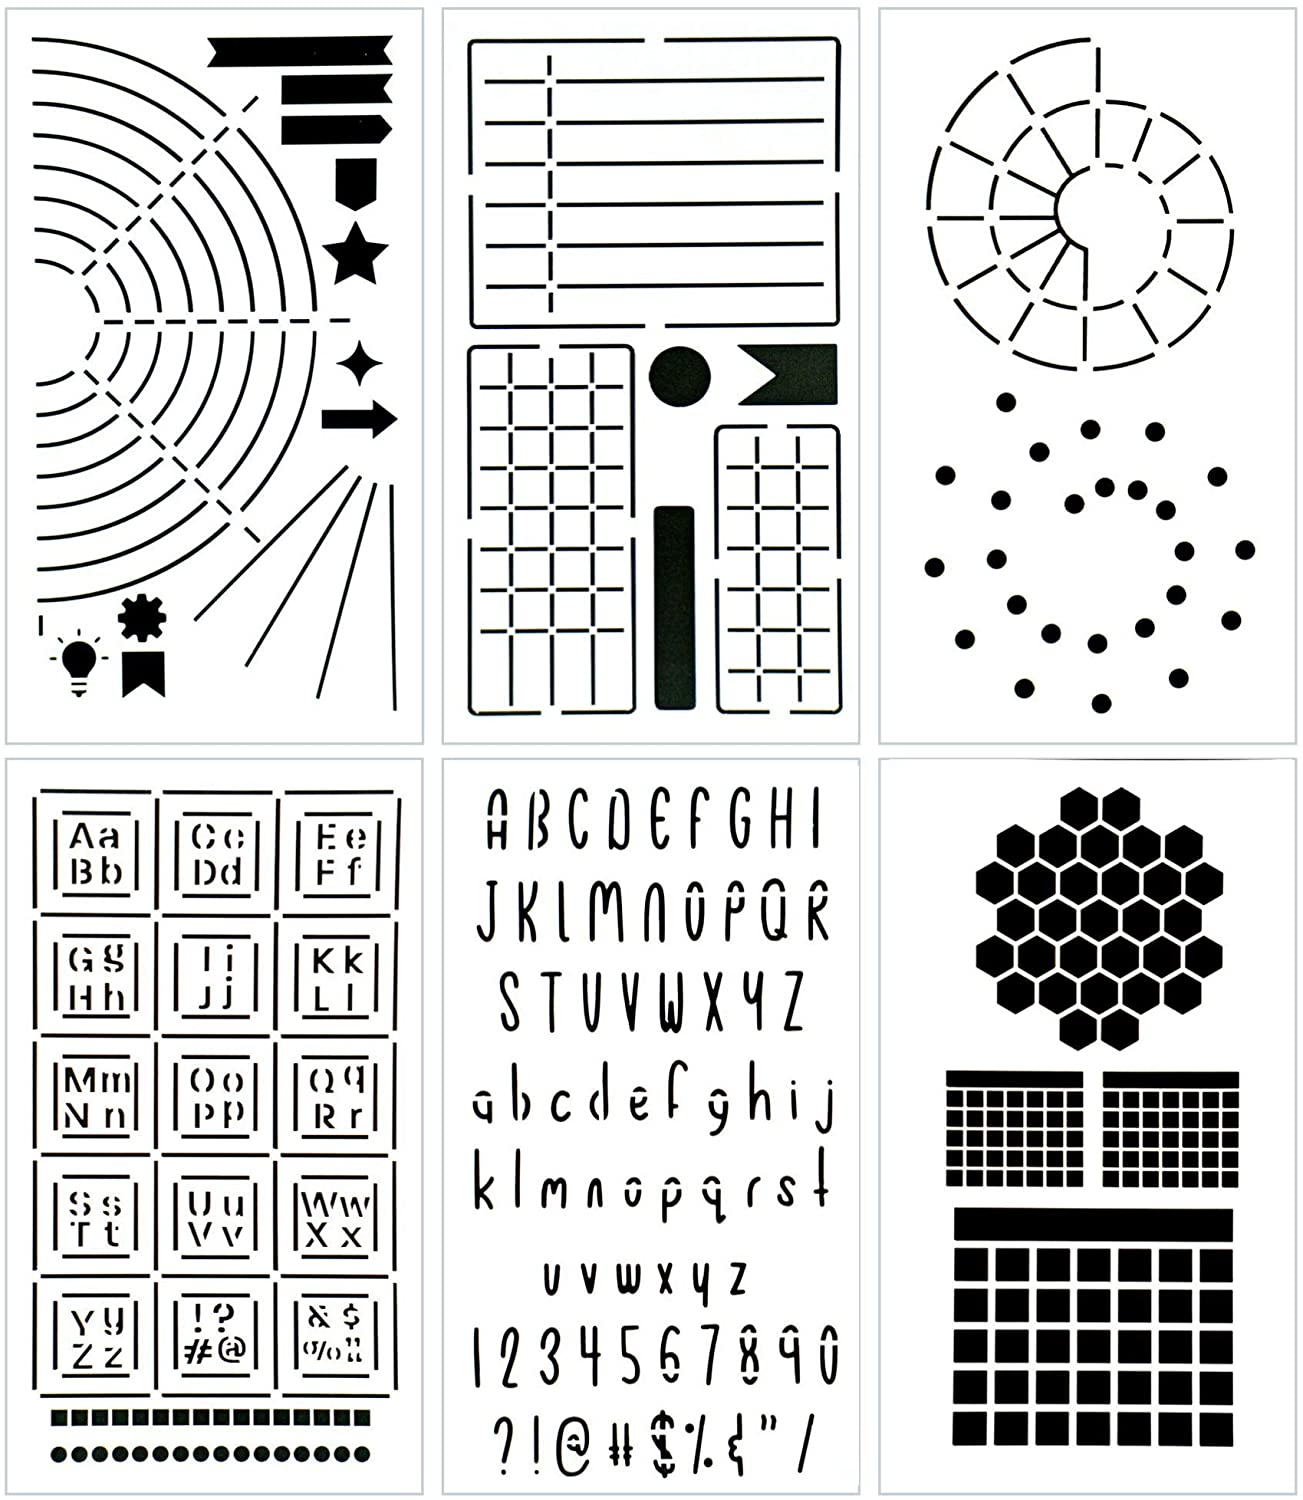 Ultimate Productivity Journal Stencil Set - Custom-Designed Supplies for Bullet Dotted Journal Planners, DIY Templates to Create Calendars, Lists, Letters, Numbers, Habit Trackers by Sunny Streak: Kitchen & Dining